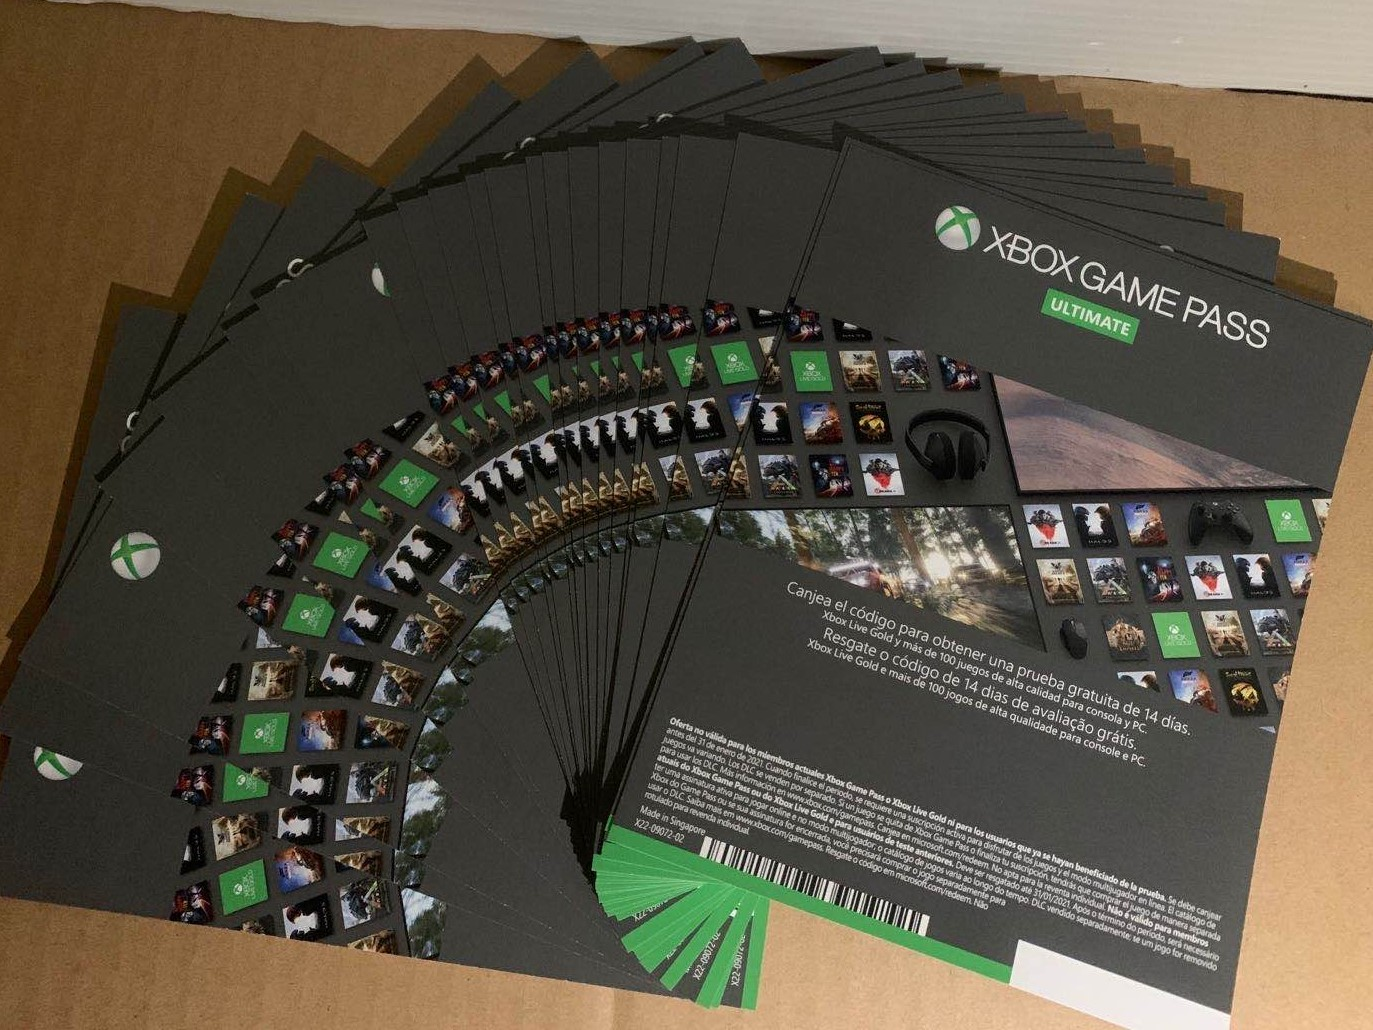 XBOX GAME PASS ULTIMATE 14 Days (WIN10-XBOX)🌎Renewal